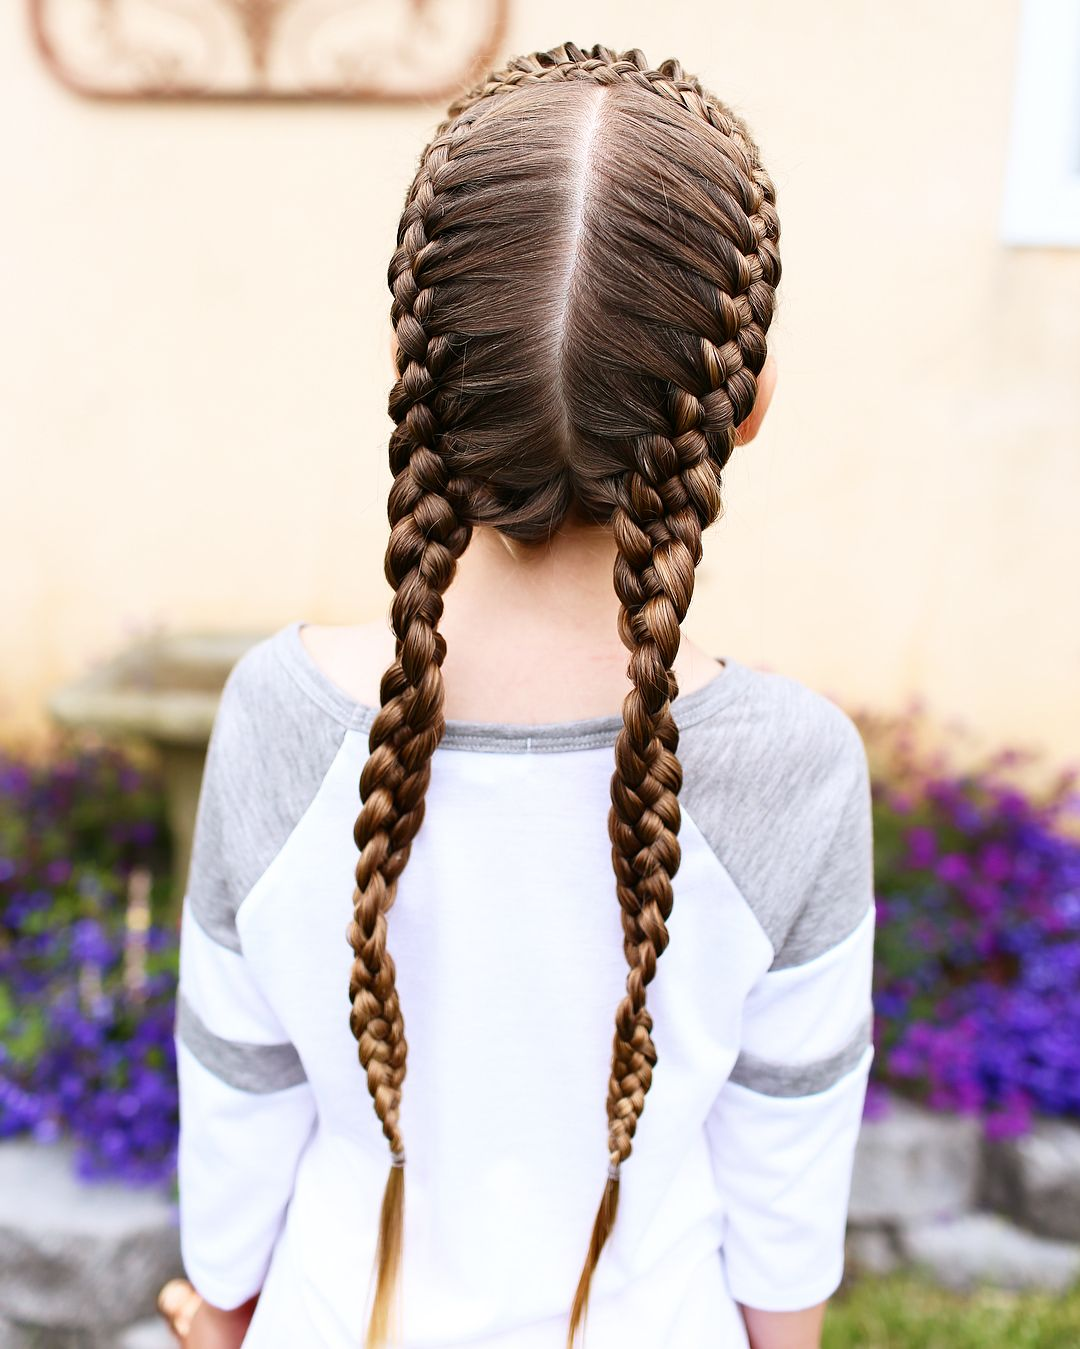 I M In Love With This Braid It S French Four Strand Braids For Some Reason They Want To Curl Up Check Out The Last Four Strand Braids Kids Hairstyles Hair